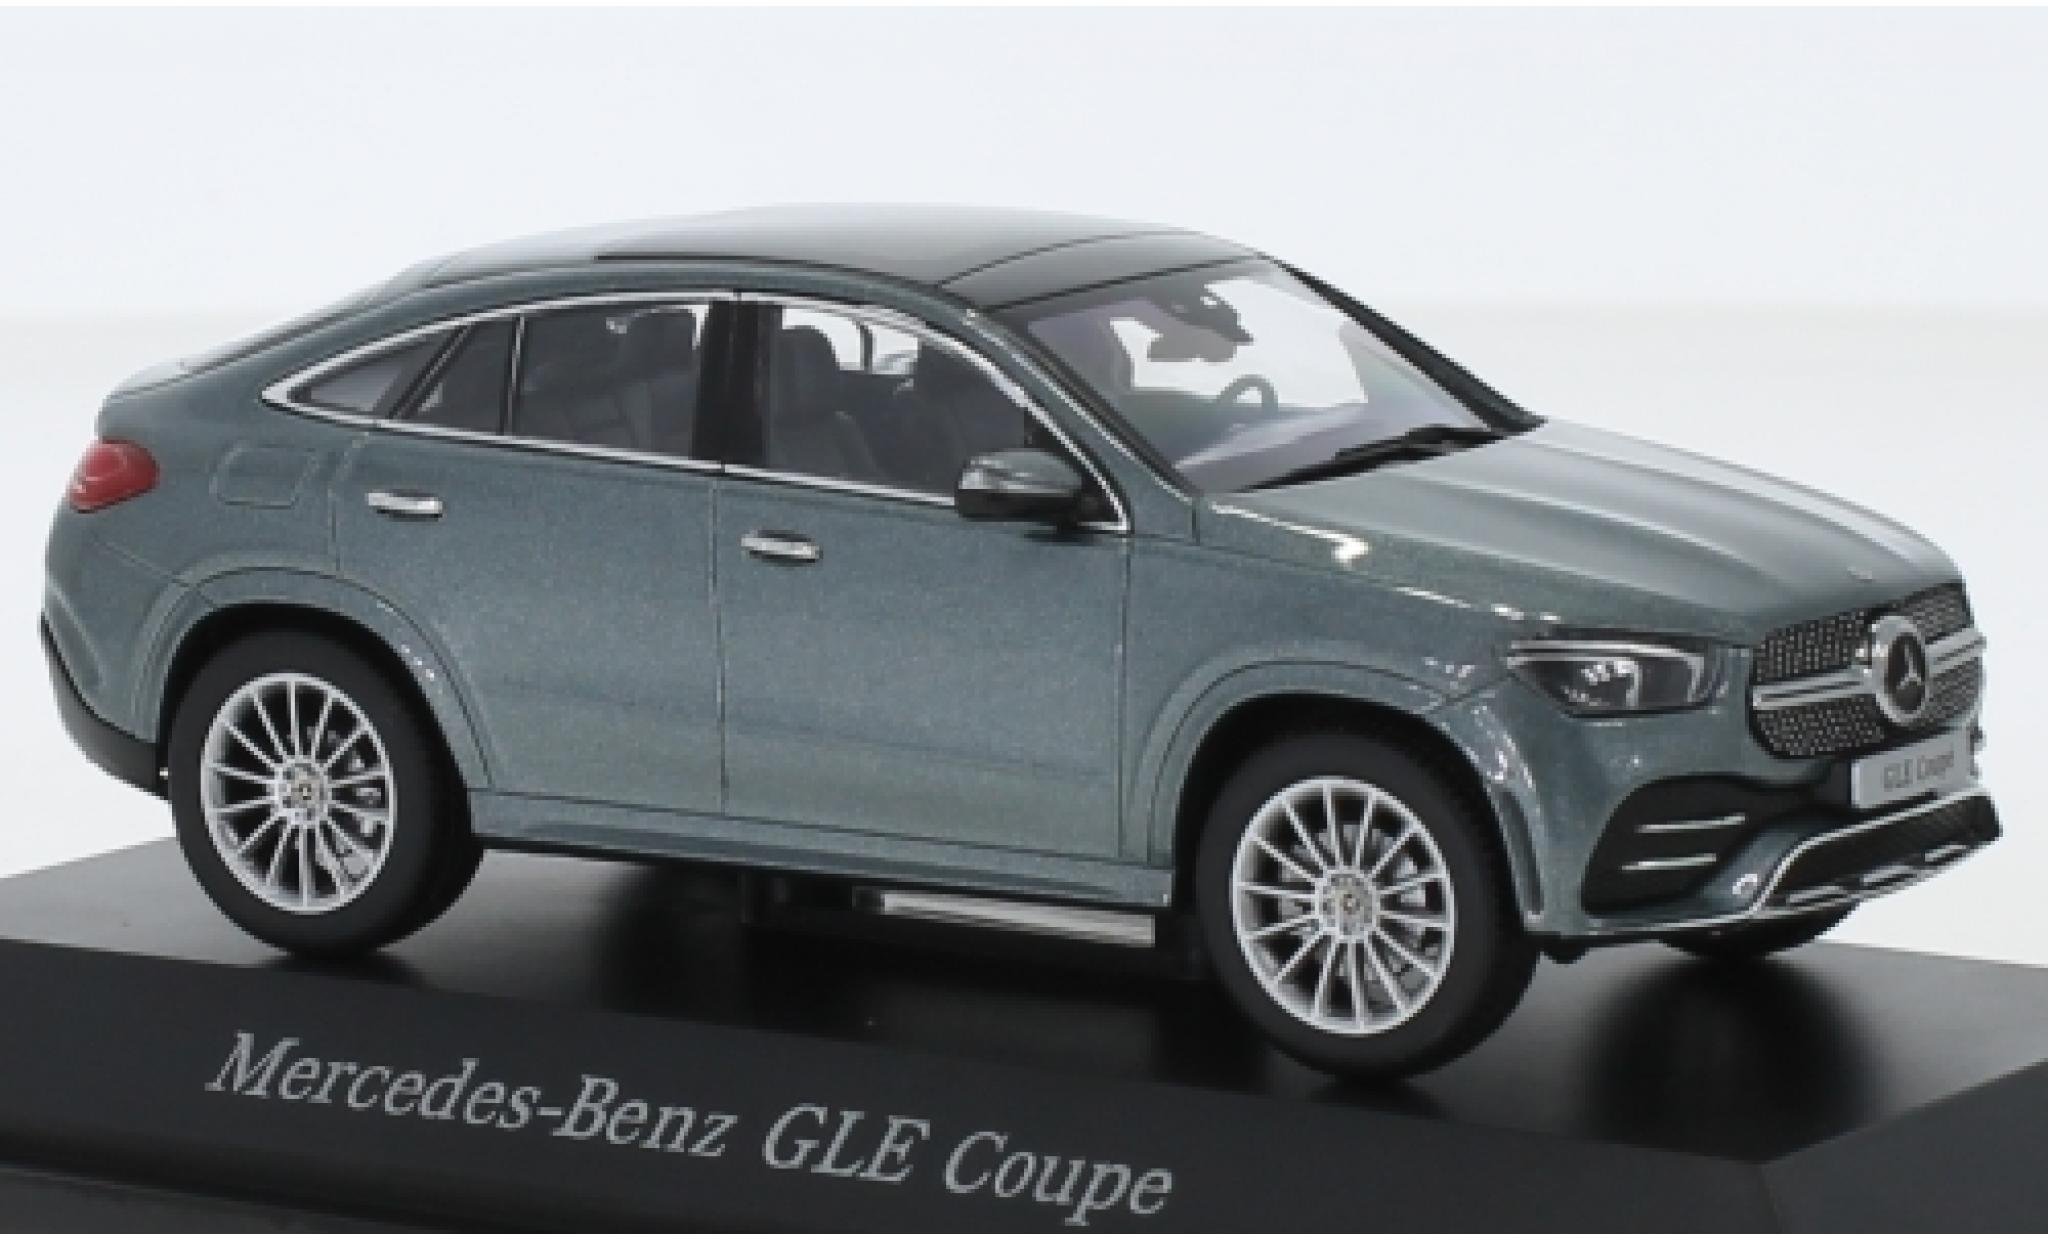 Mercedes Classe GLE 1/43 iScale GLE Coupe (C167) metallise grise